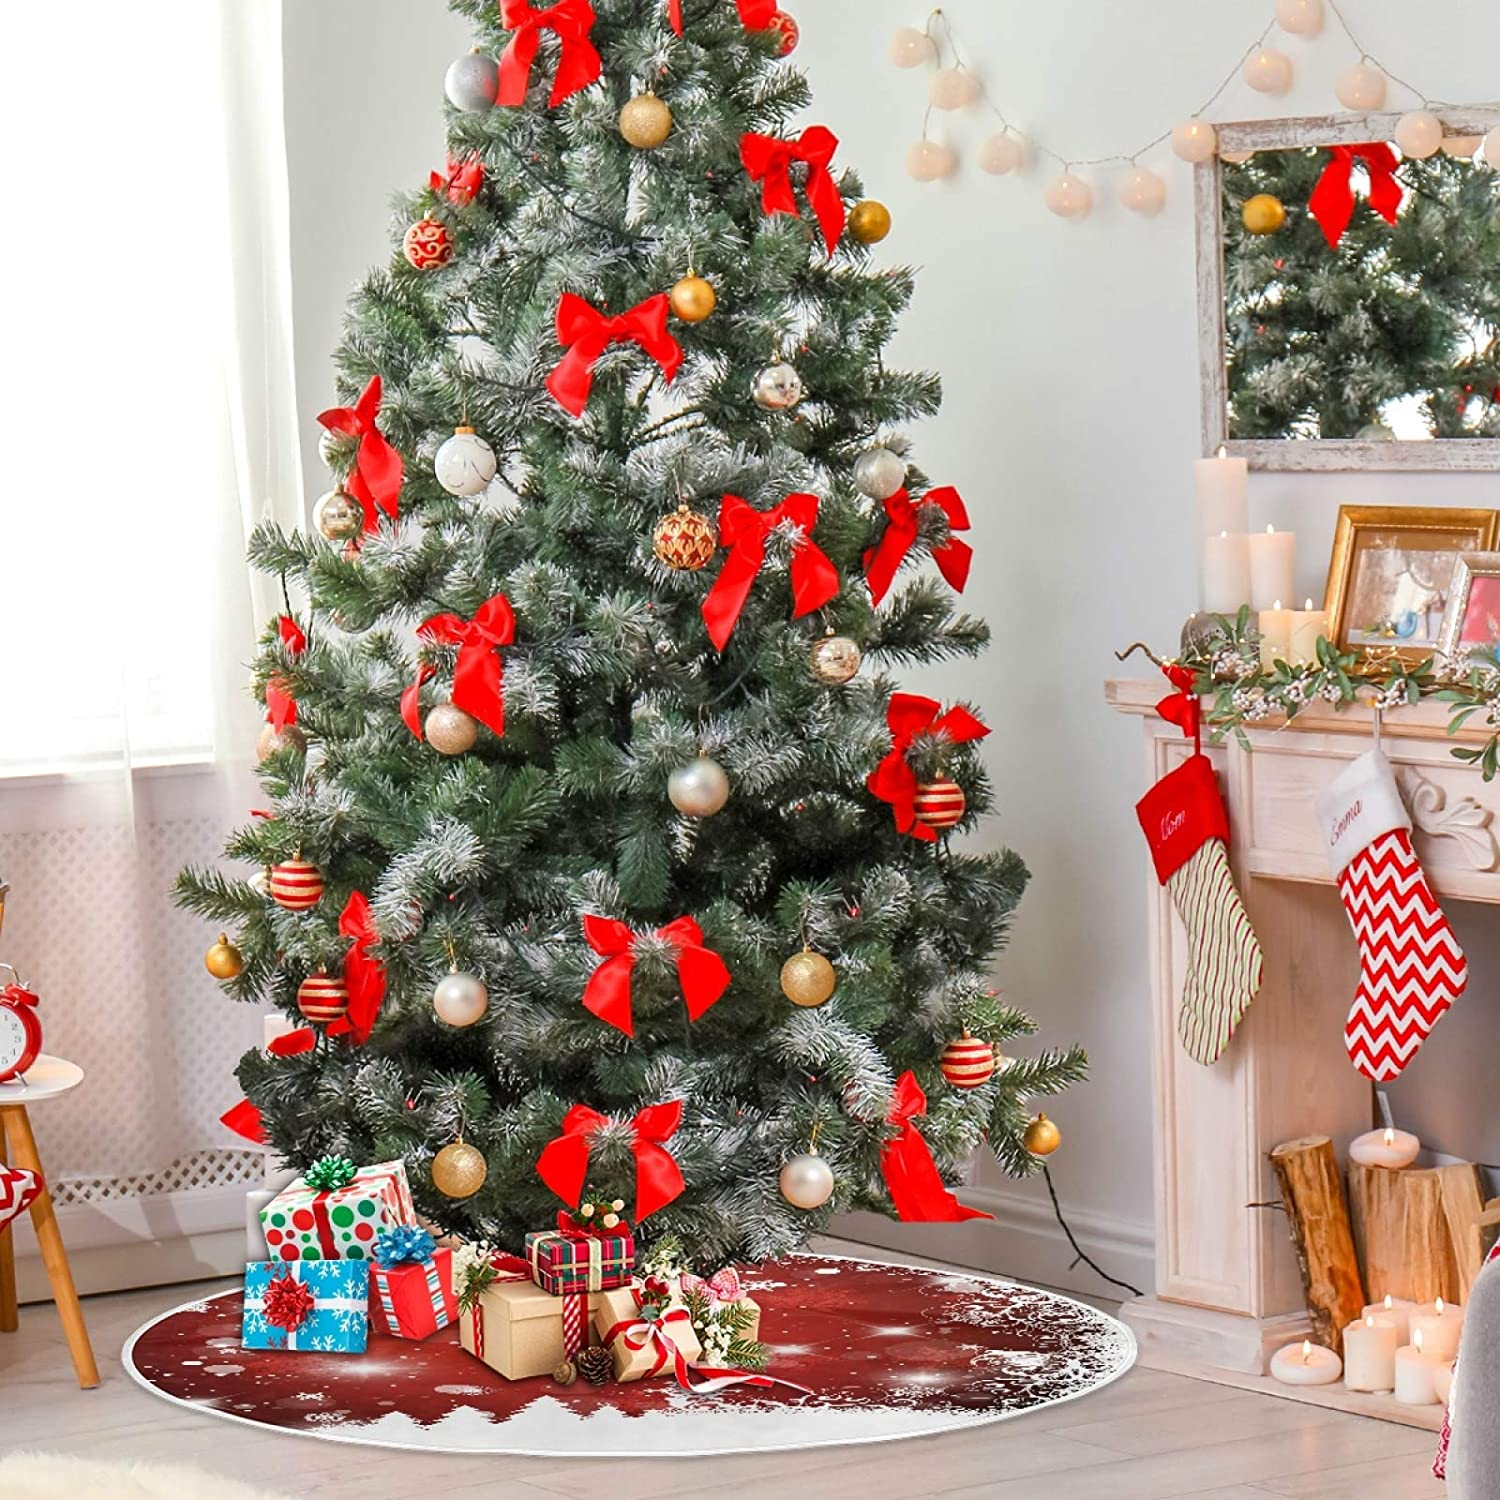 120 CM Mnsruu Red Christmas Background With Tree Christmas Tree Skirt Snow Tree Skirts for Christmas Holiday Decorations